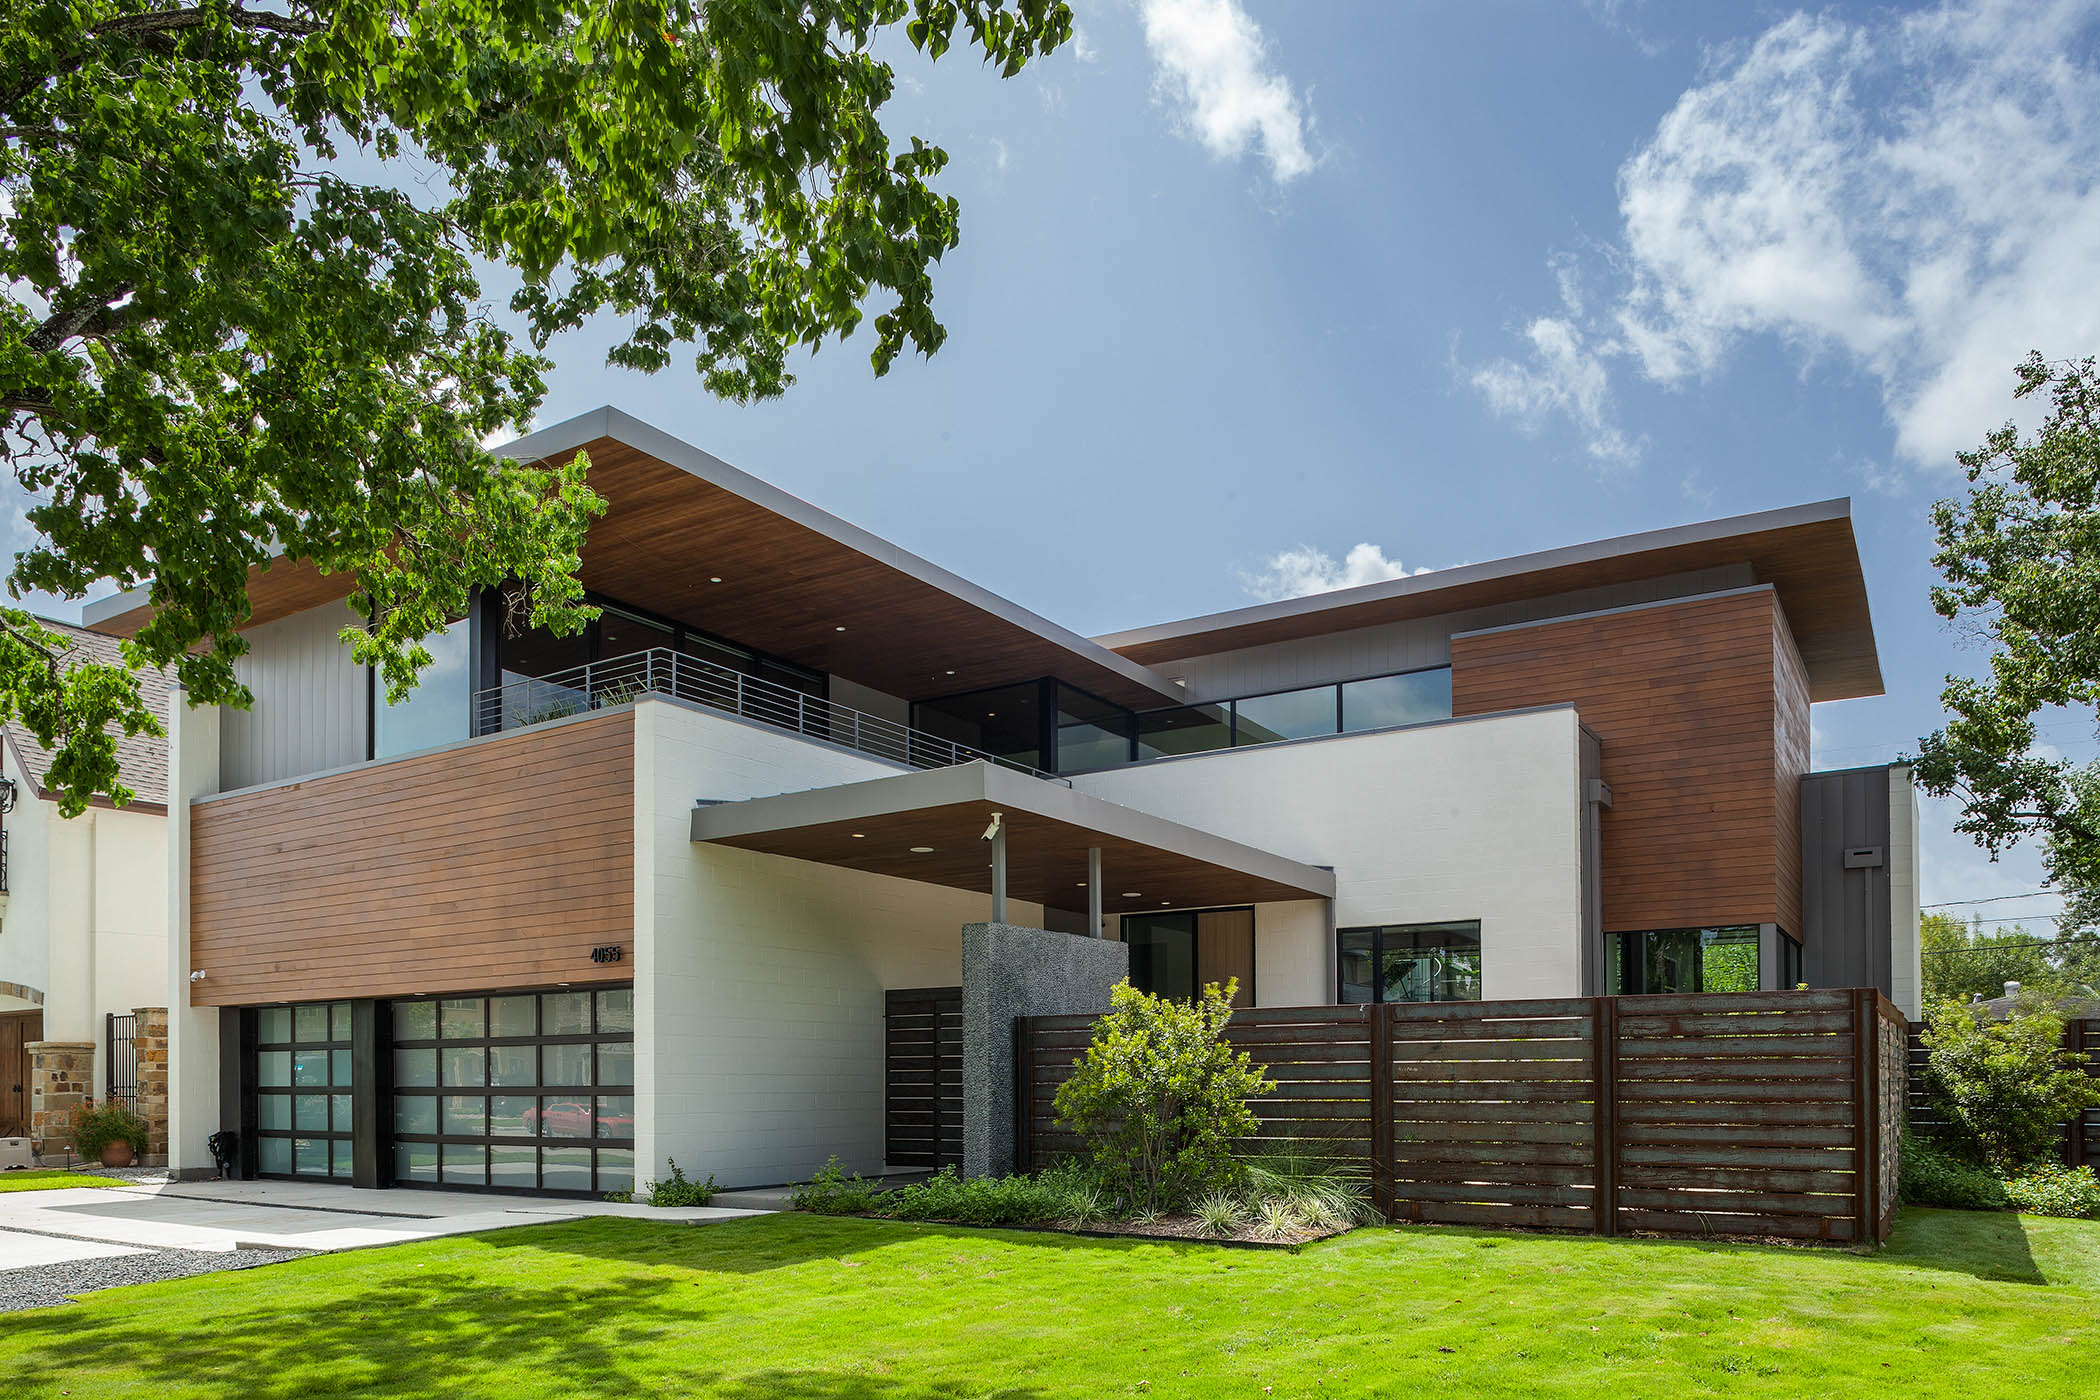 Aia houston showcases local architects and modern homes in for Modern houses in houston